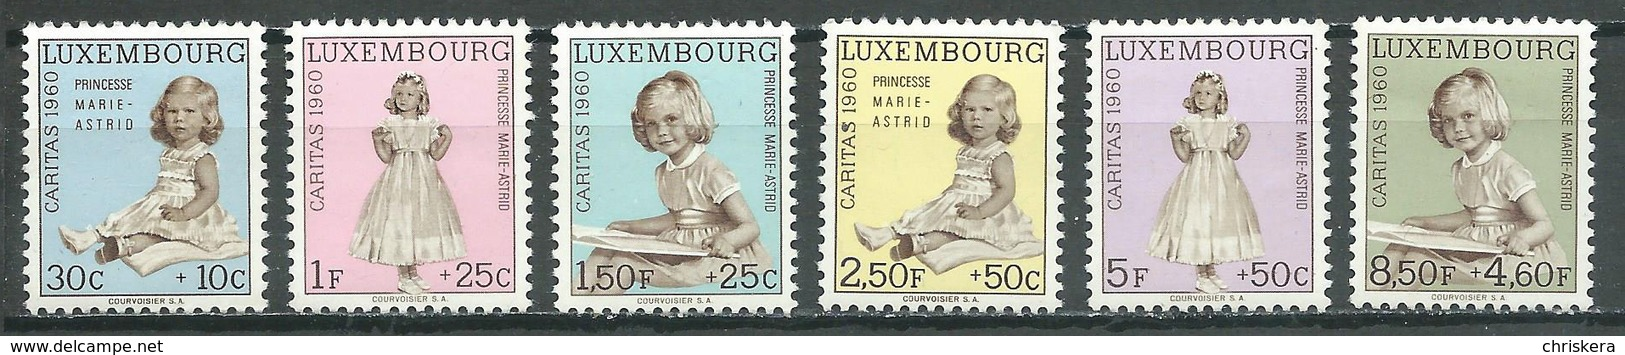 Luxembourg YT N°589/594 Caritas 1960 Neuf/charnière * - Ungebraucht